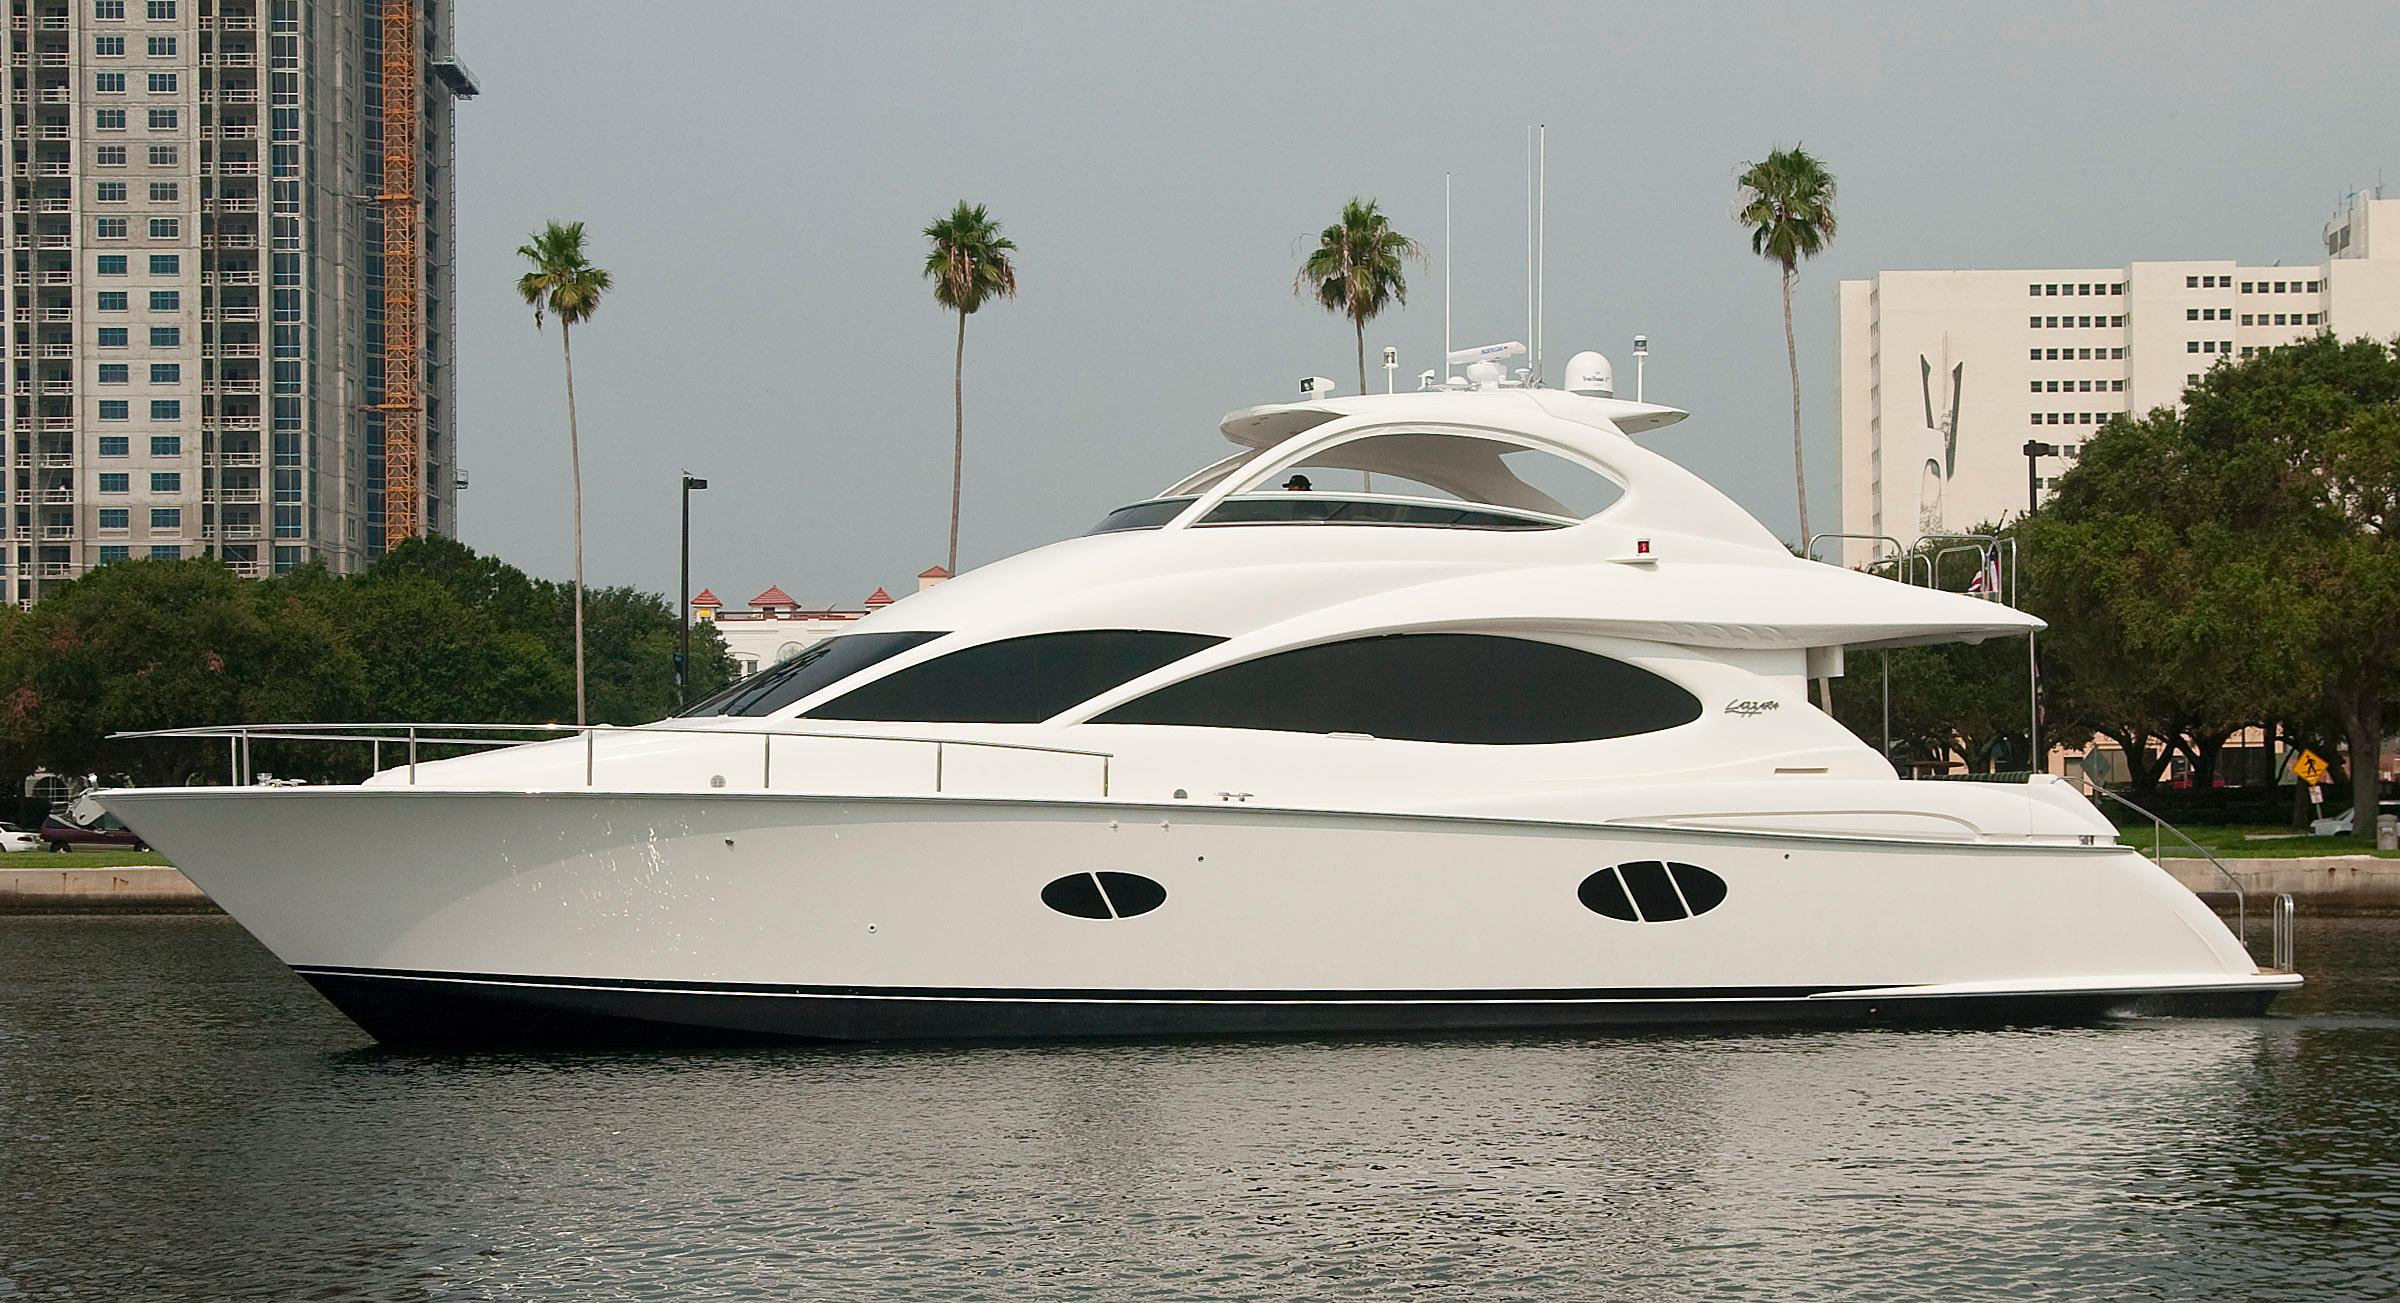 68 ft Lazzara 68 Motor Yacht